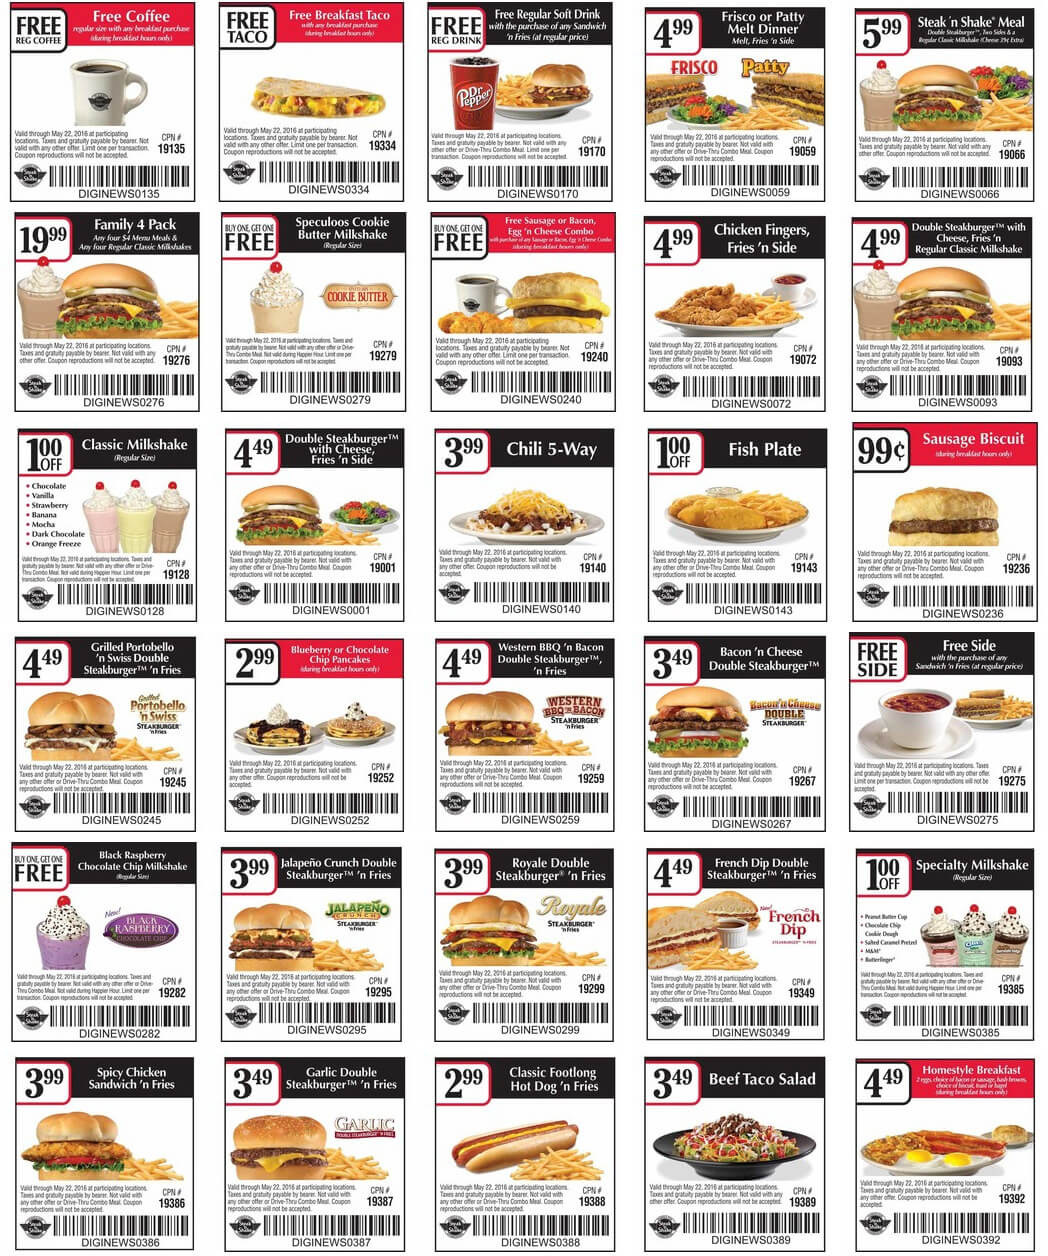 Steak n Shake Coupon December 2016 Free coffee, breakfast taco & more at Steak n Shake